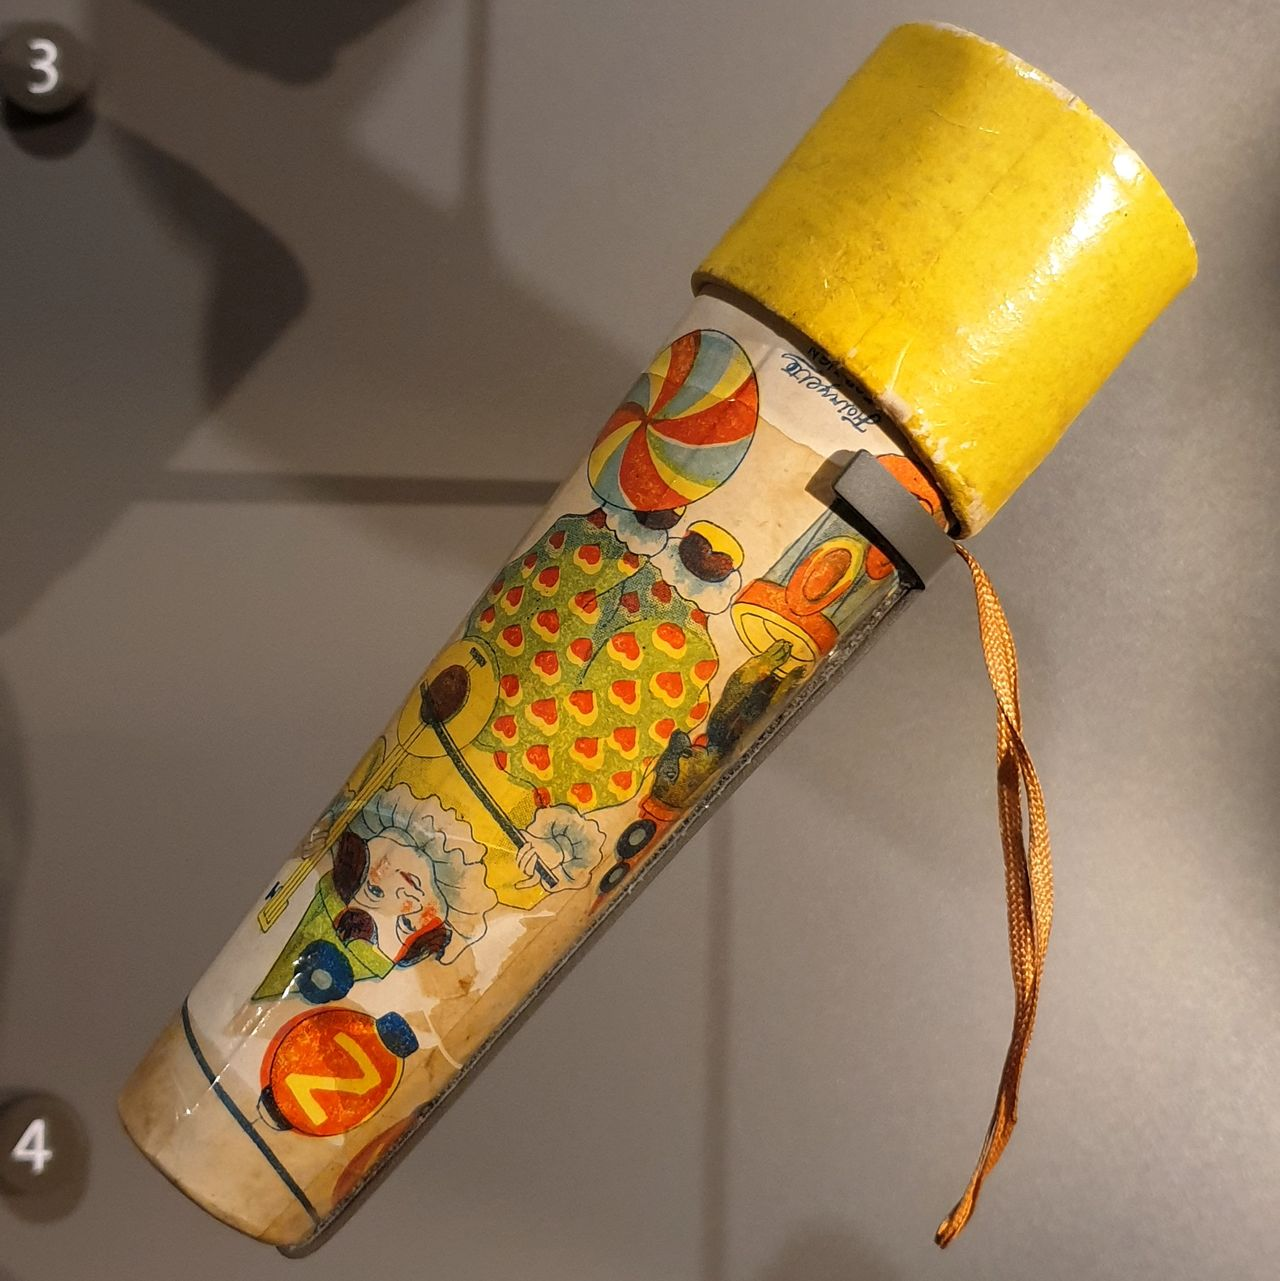 A small kaleidoscope. Looks like a conical tube covered in colourful paper with a circus-like scene, including a clown-like musician, a seal on a platform, etc.